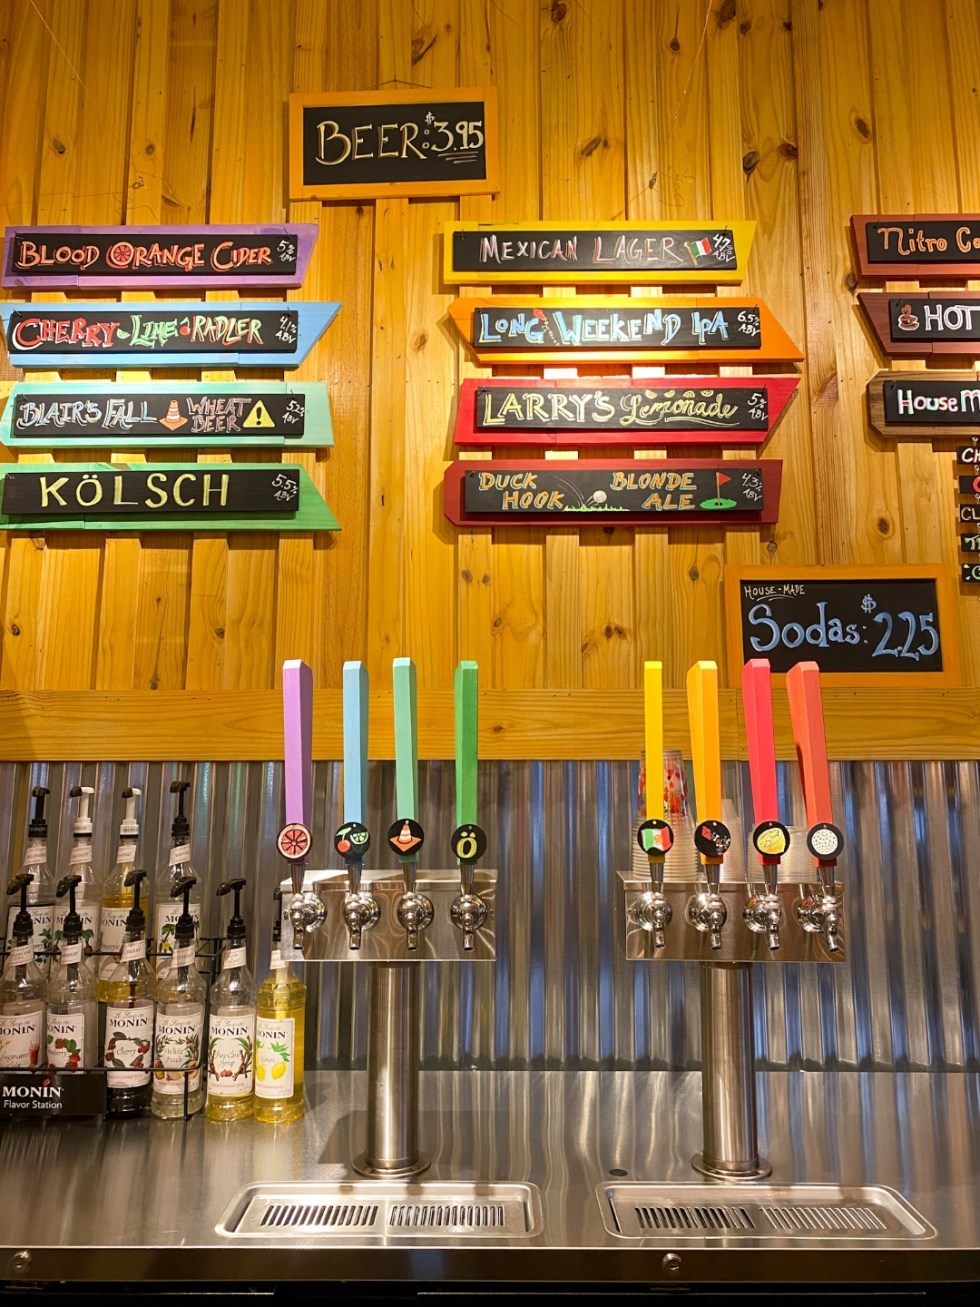 Top 10 Best Things to Do in Edenton, NC: A Complete Travel Guide - I'm Fixin' To - @imfixintoblog | Edenton Travel Guide by popular NC travel guid, I'm Fixin' To: image of a wooden plant wall with a display of various beer names on colorful wooden boards nailed to it.